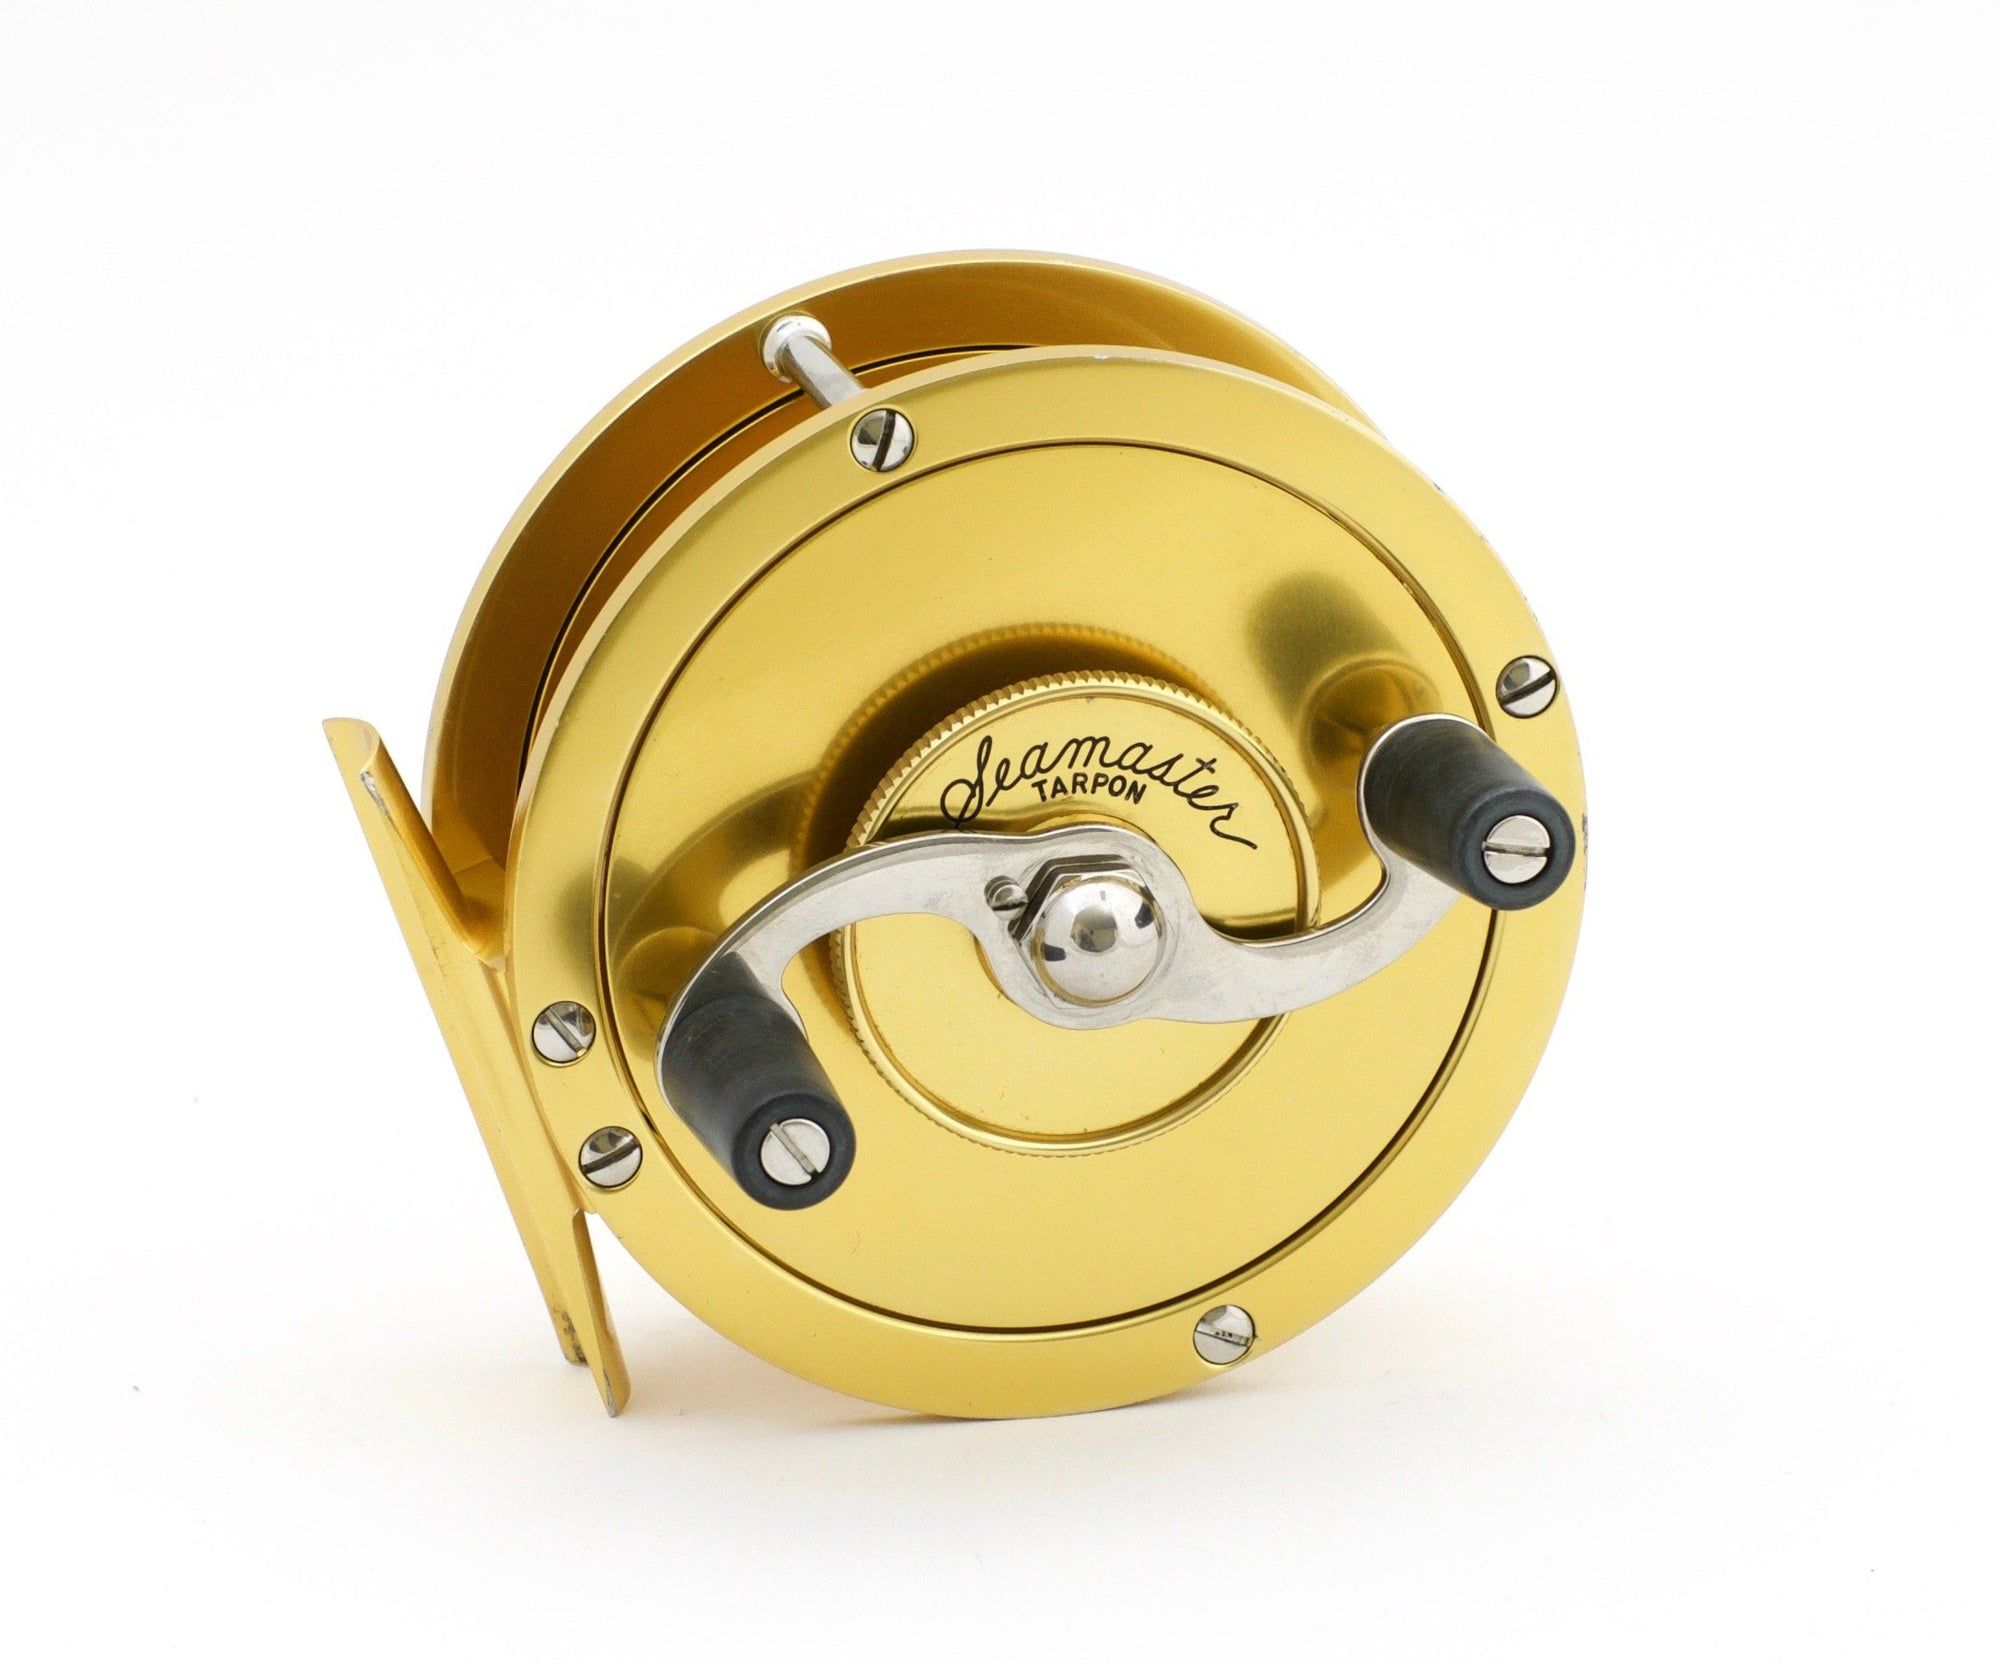 Seamaster 1st Model S-Handle Tarpon Fly Reel